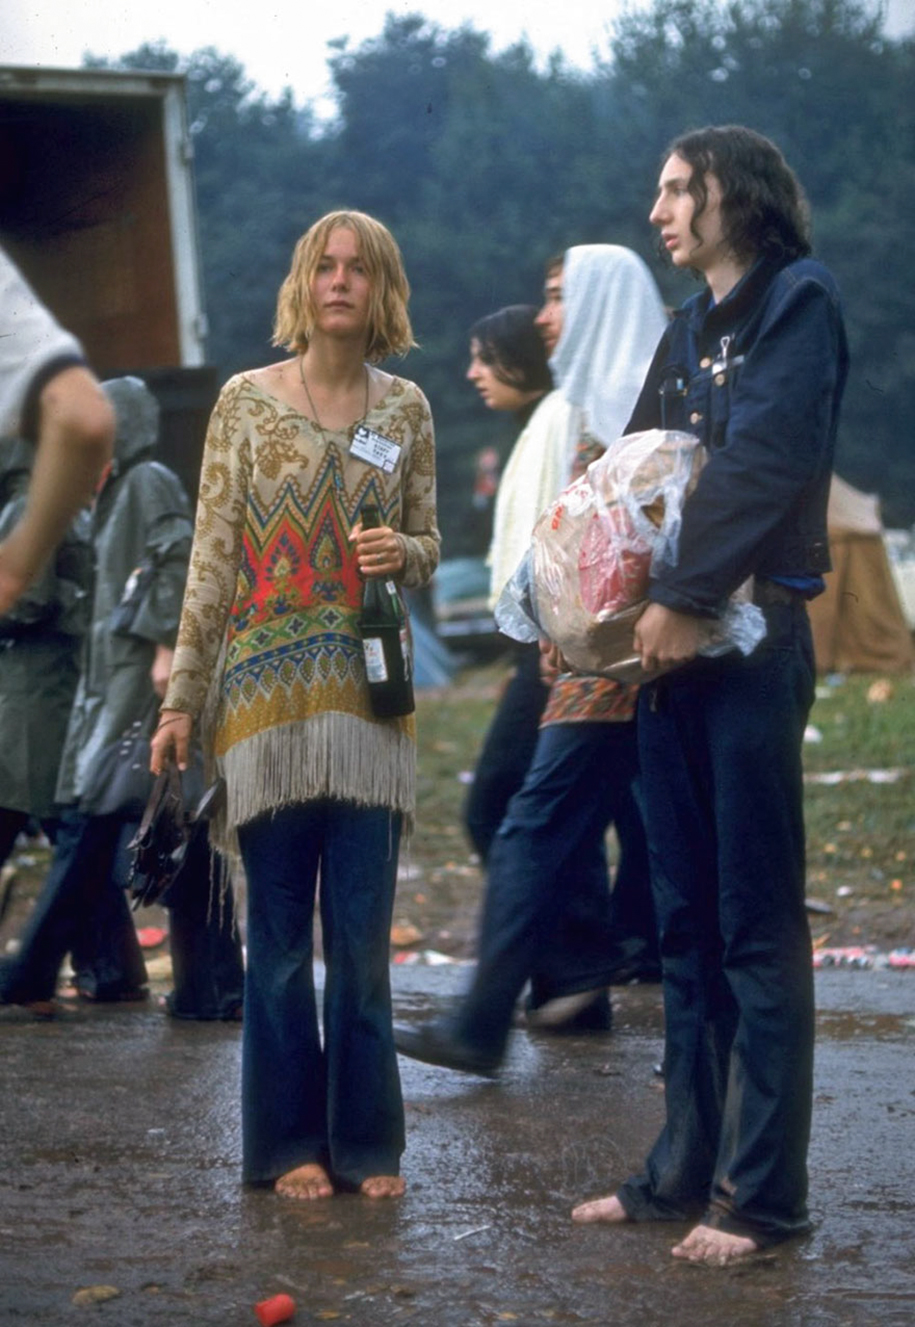 Girls from Woodstock